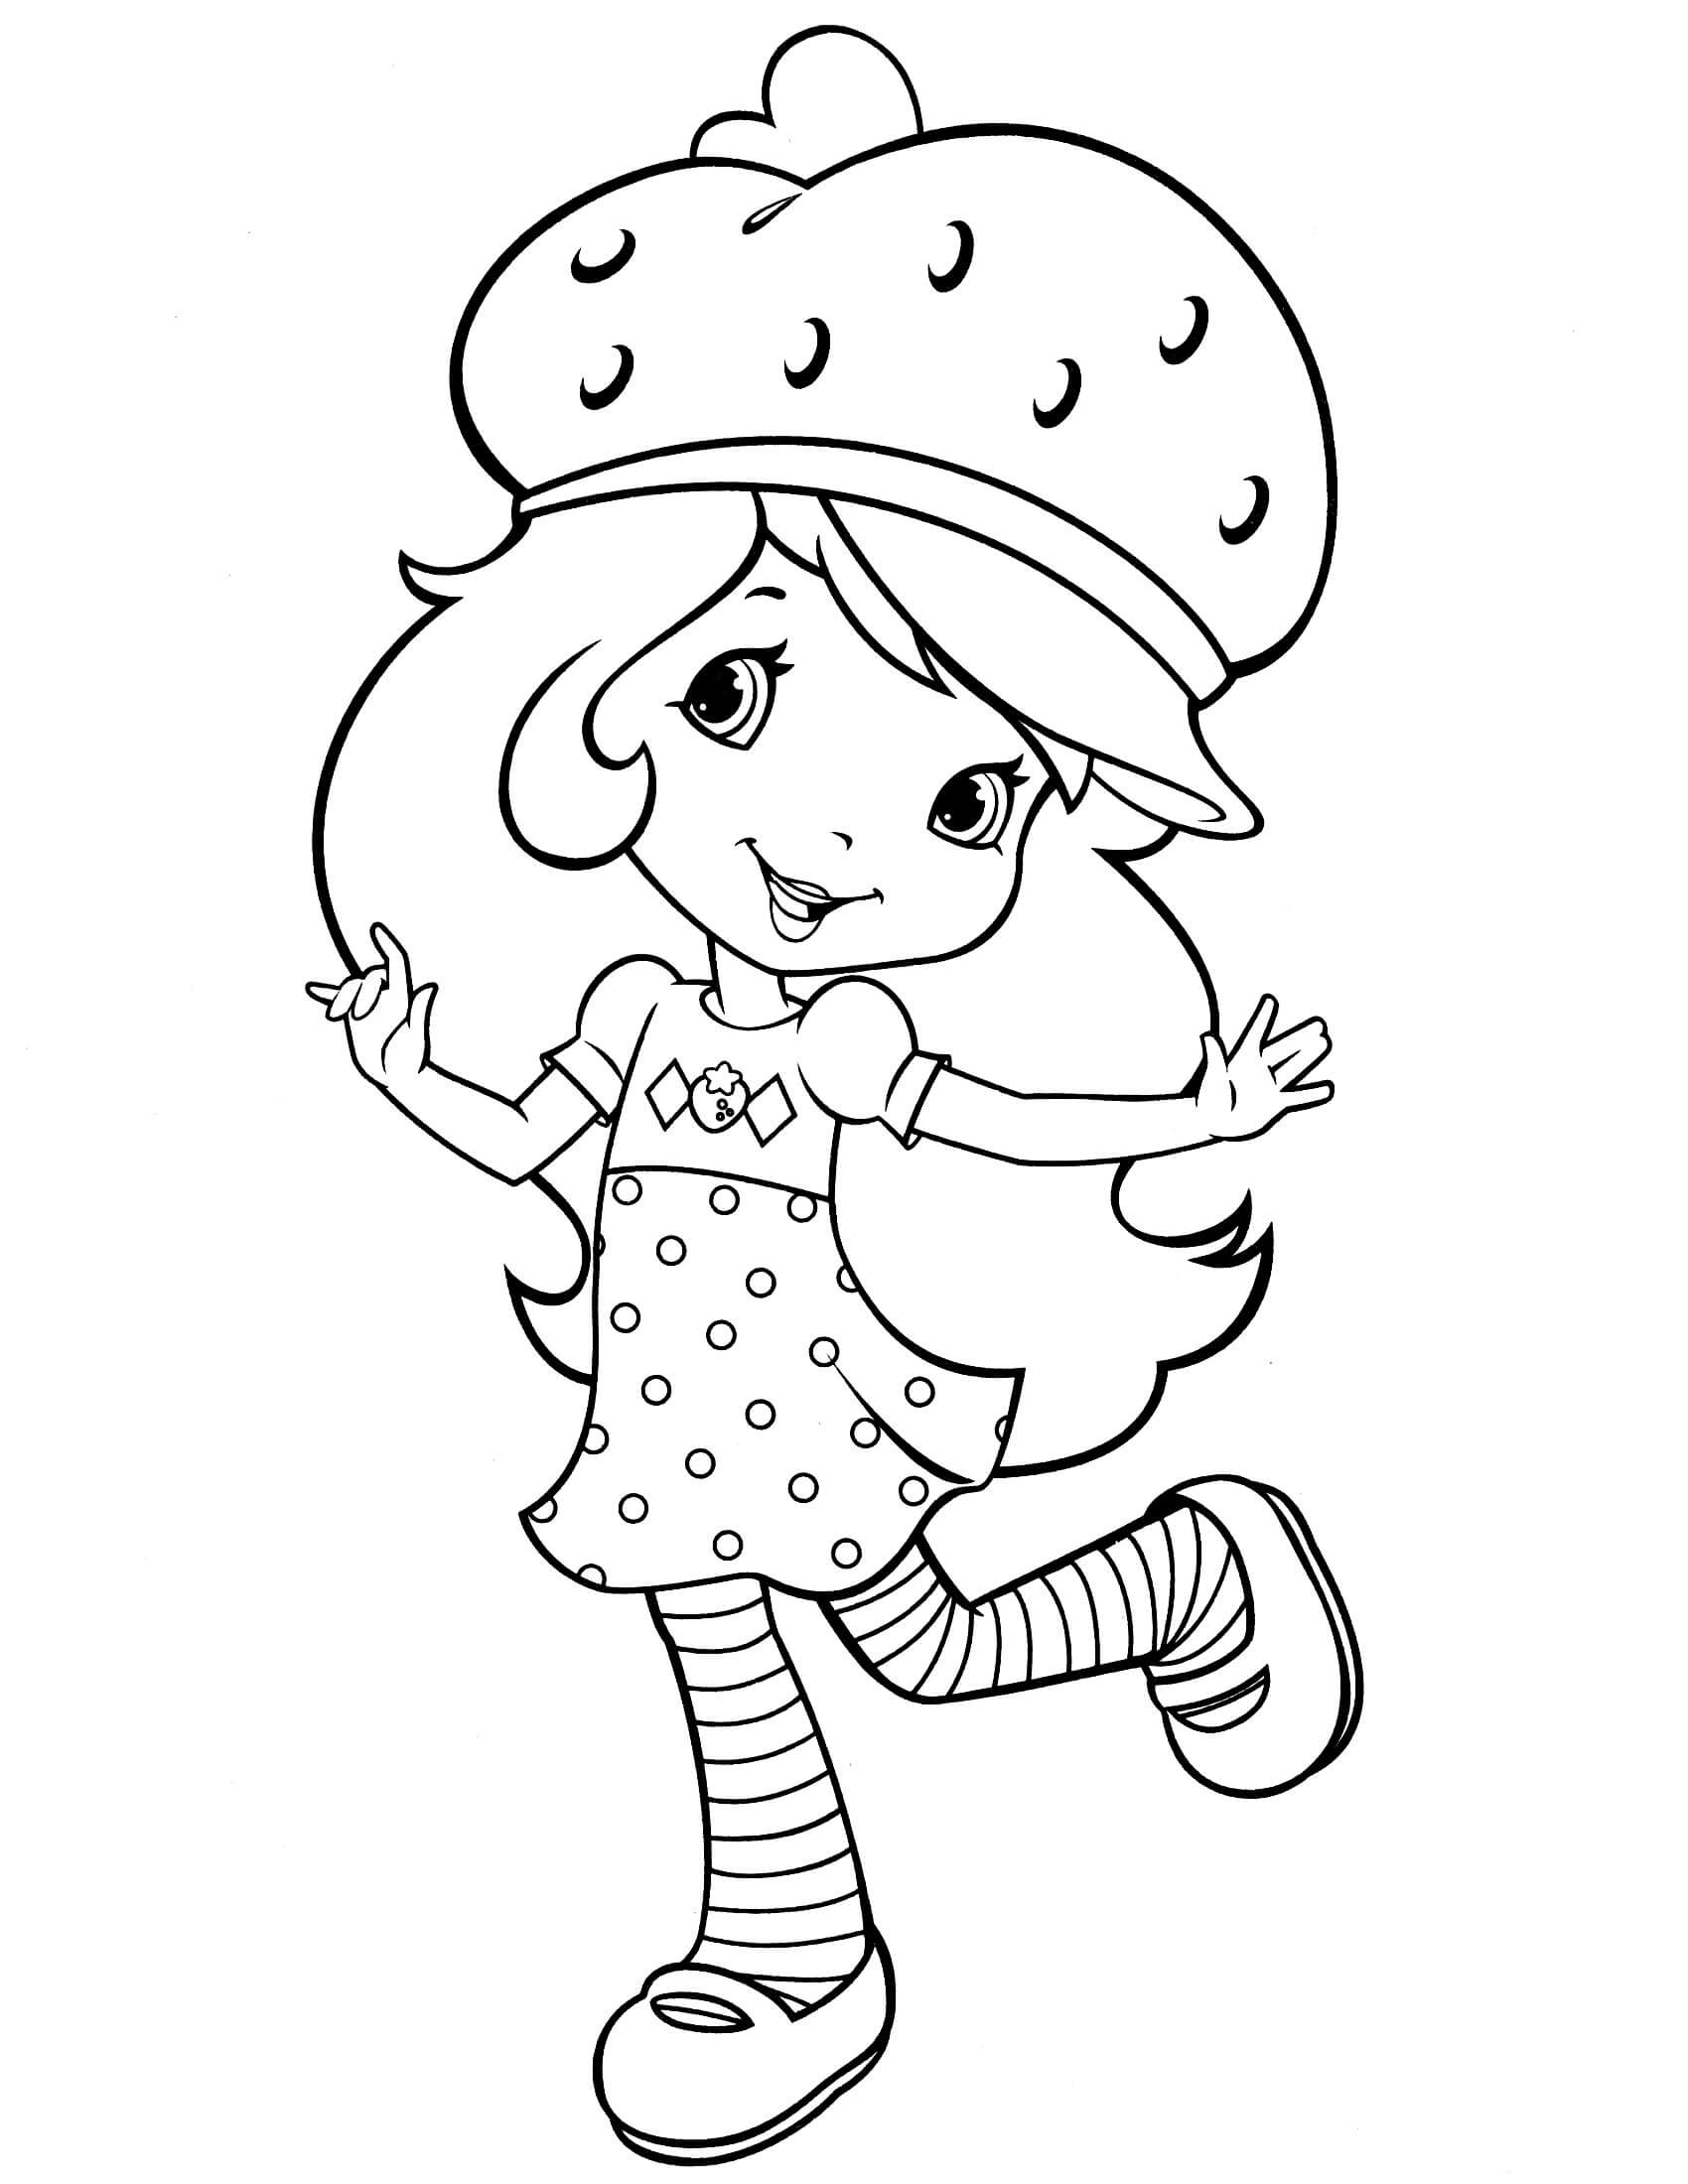 Strawberry Shortcake Coloring Page  Strawberry Shortcake 43 Coloringcolor